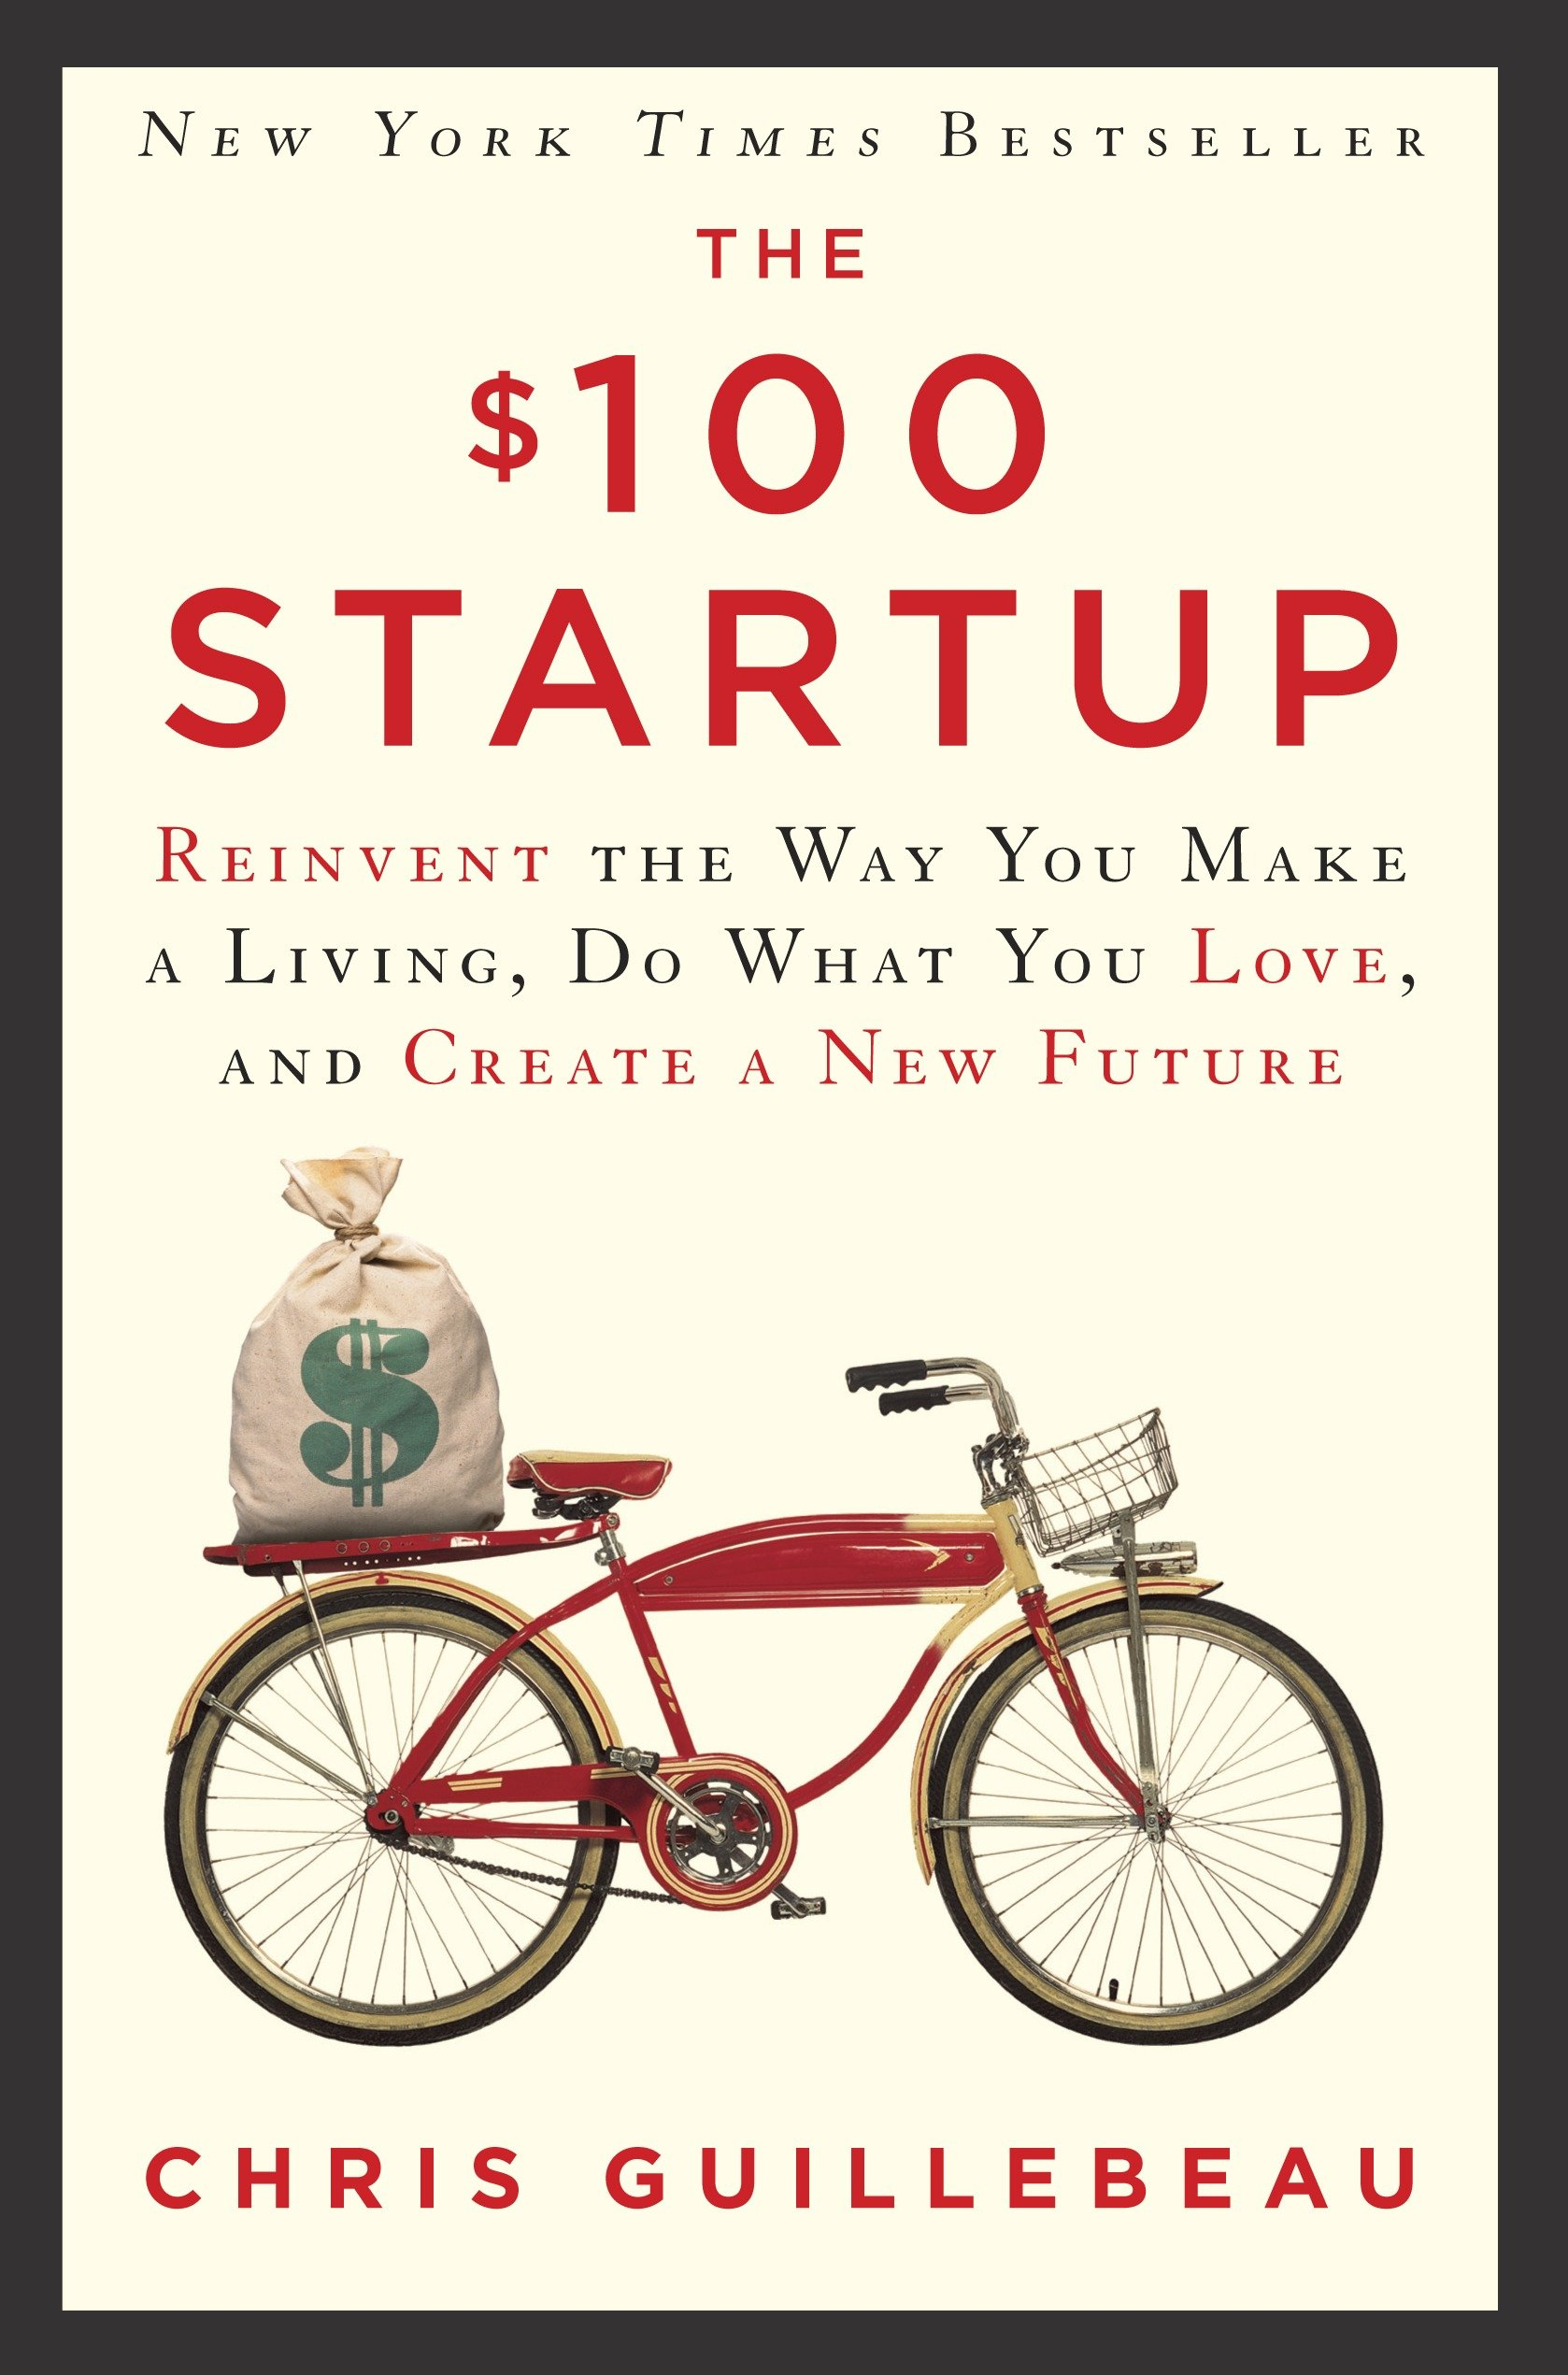 The $100 startup reinvent the way you make a living, do what you love, and create a new future cover image